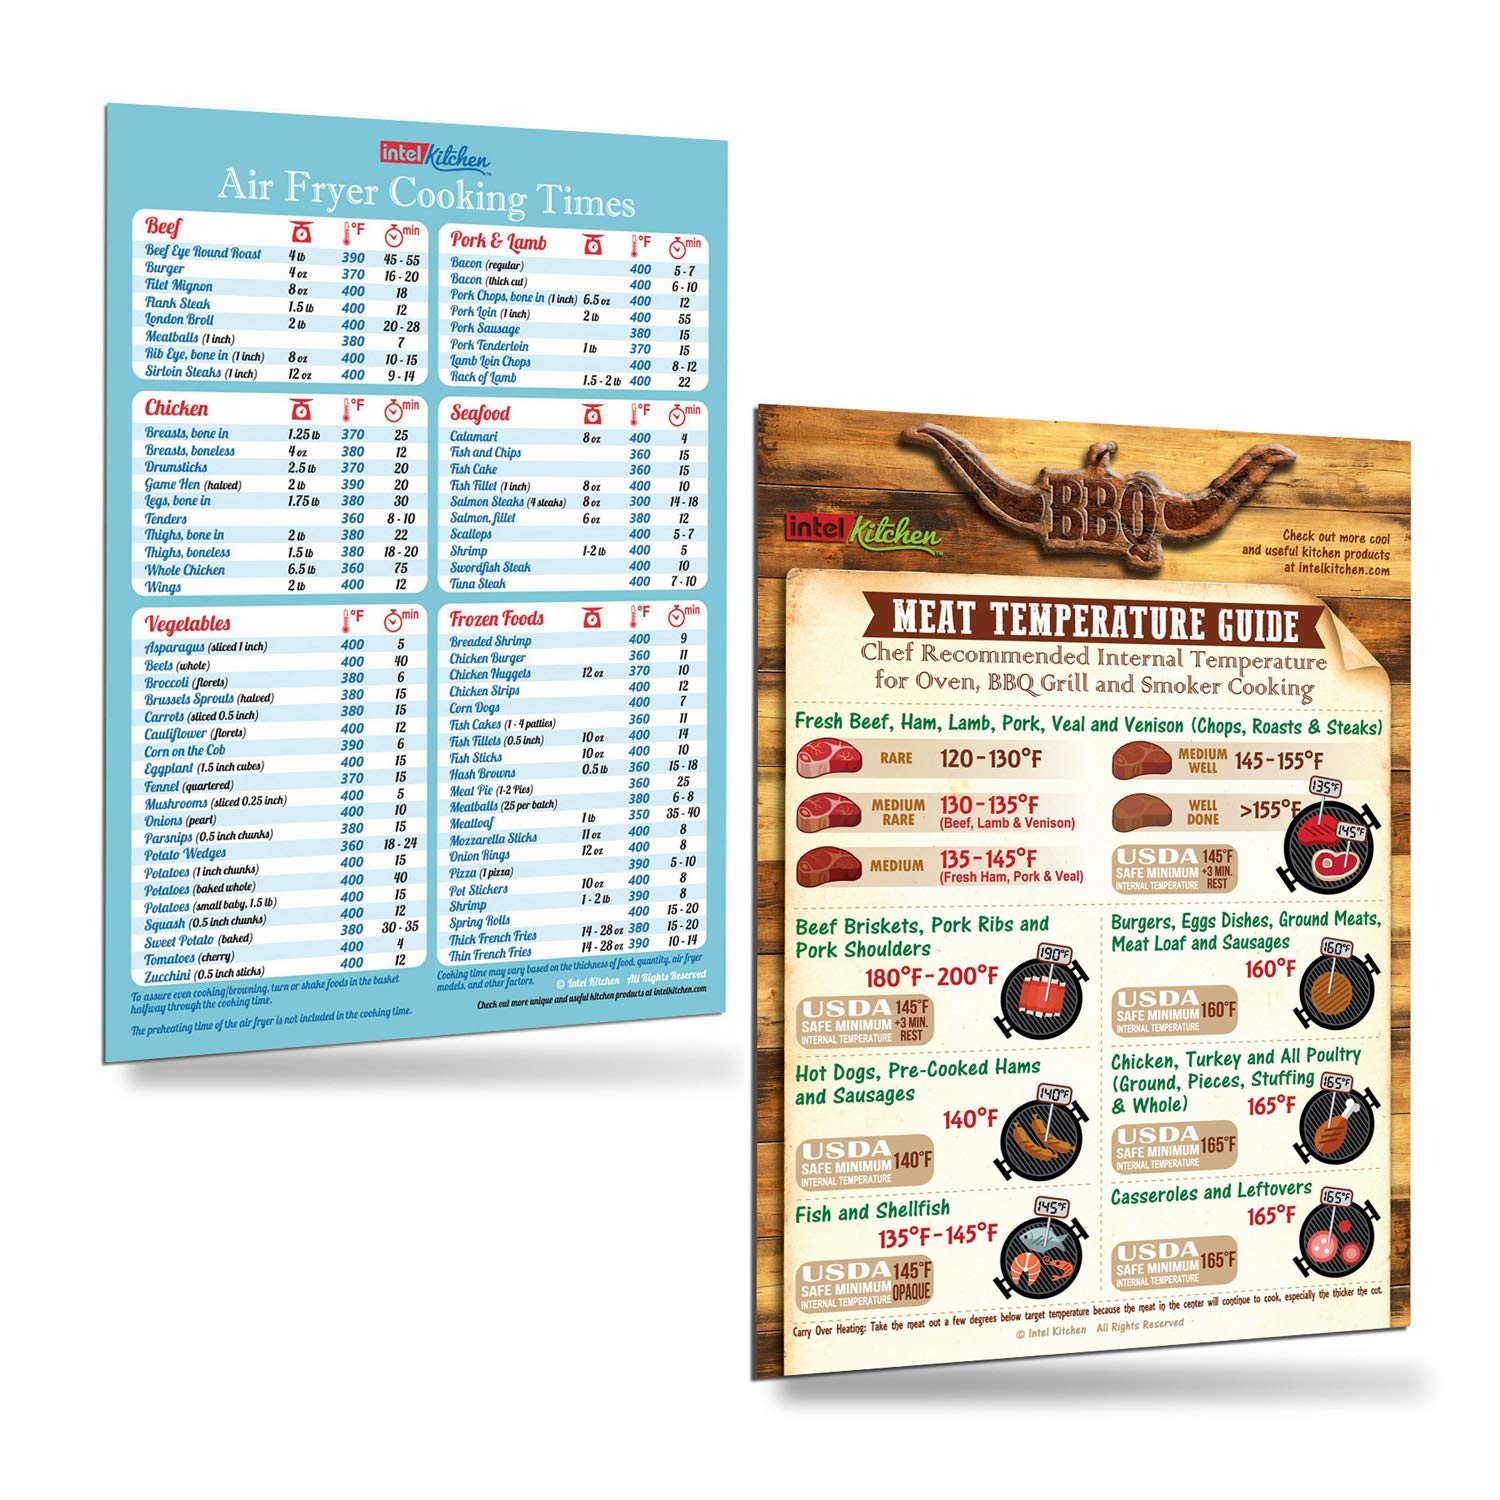 """Cool Kitchen Gift Set: Blue Air Fryer Cooking Times + BBQ Grilling Meat Temperature Guide Magnets (8""""x11"""") Cooking Baking Hot Air Frying Cook Time Chart Recipes Cookbook Cheat Sheet Accessories Easy To Read Big Fonts Gifts for Husband Wife Dad Son"""